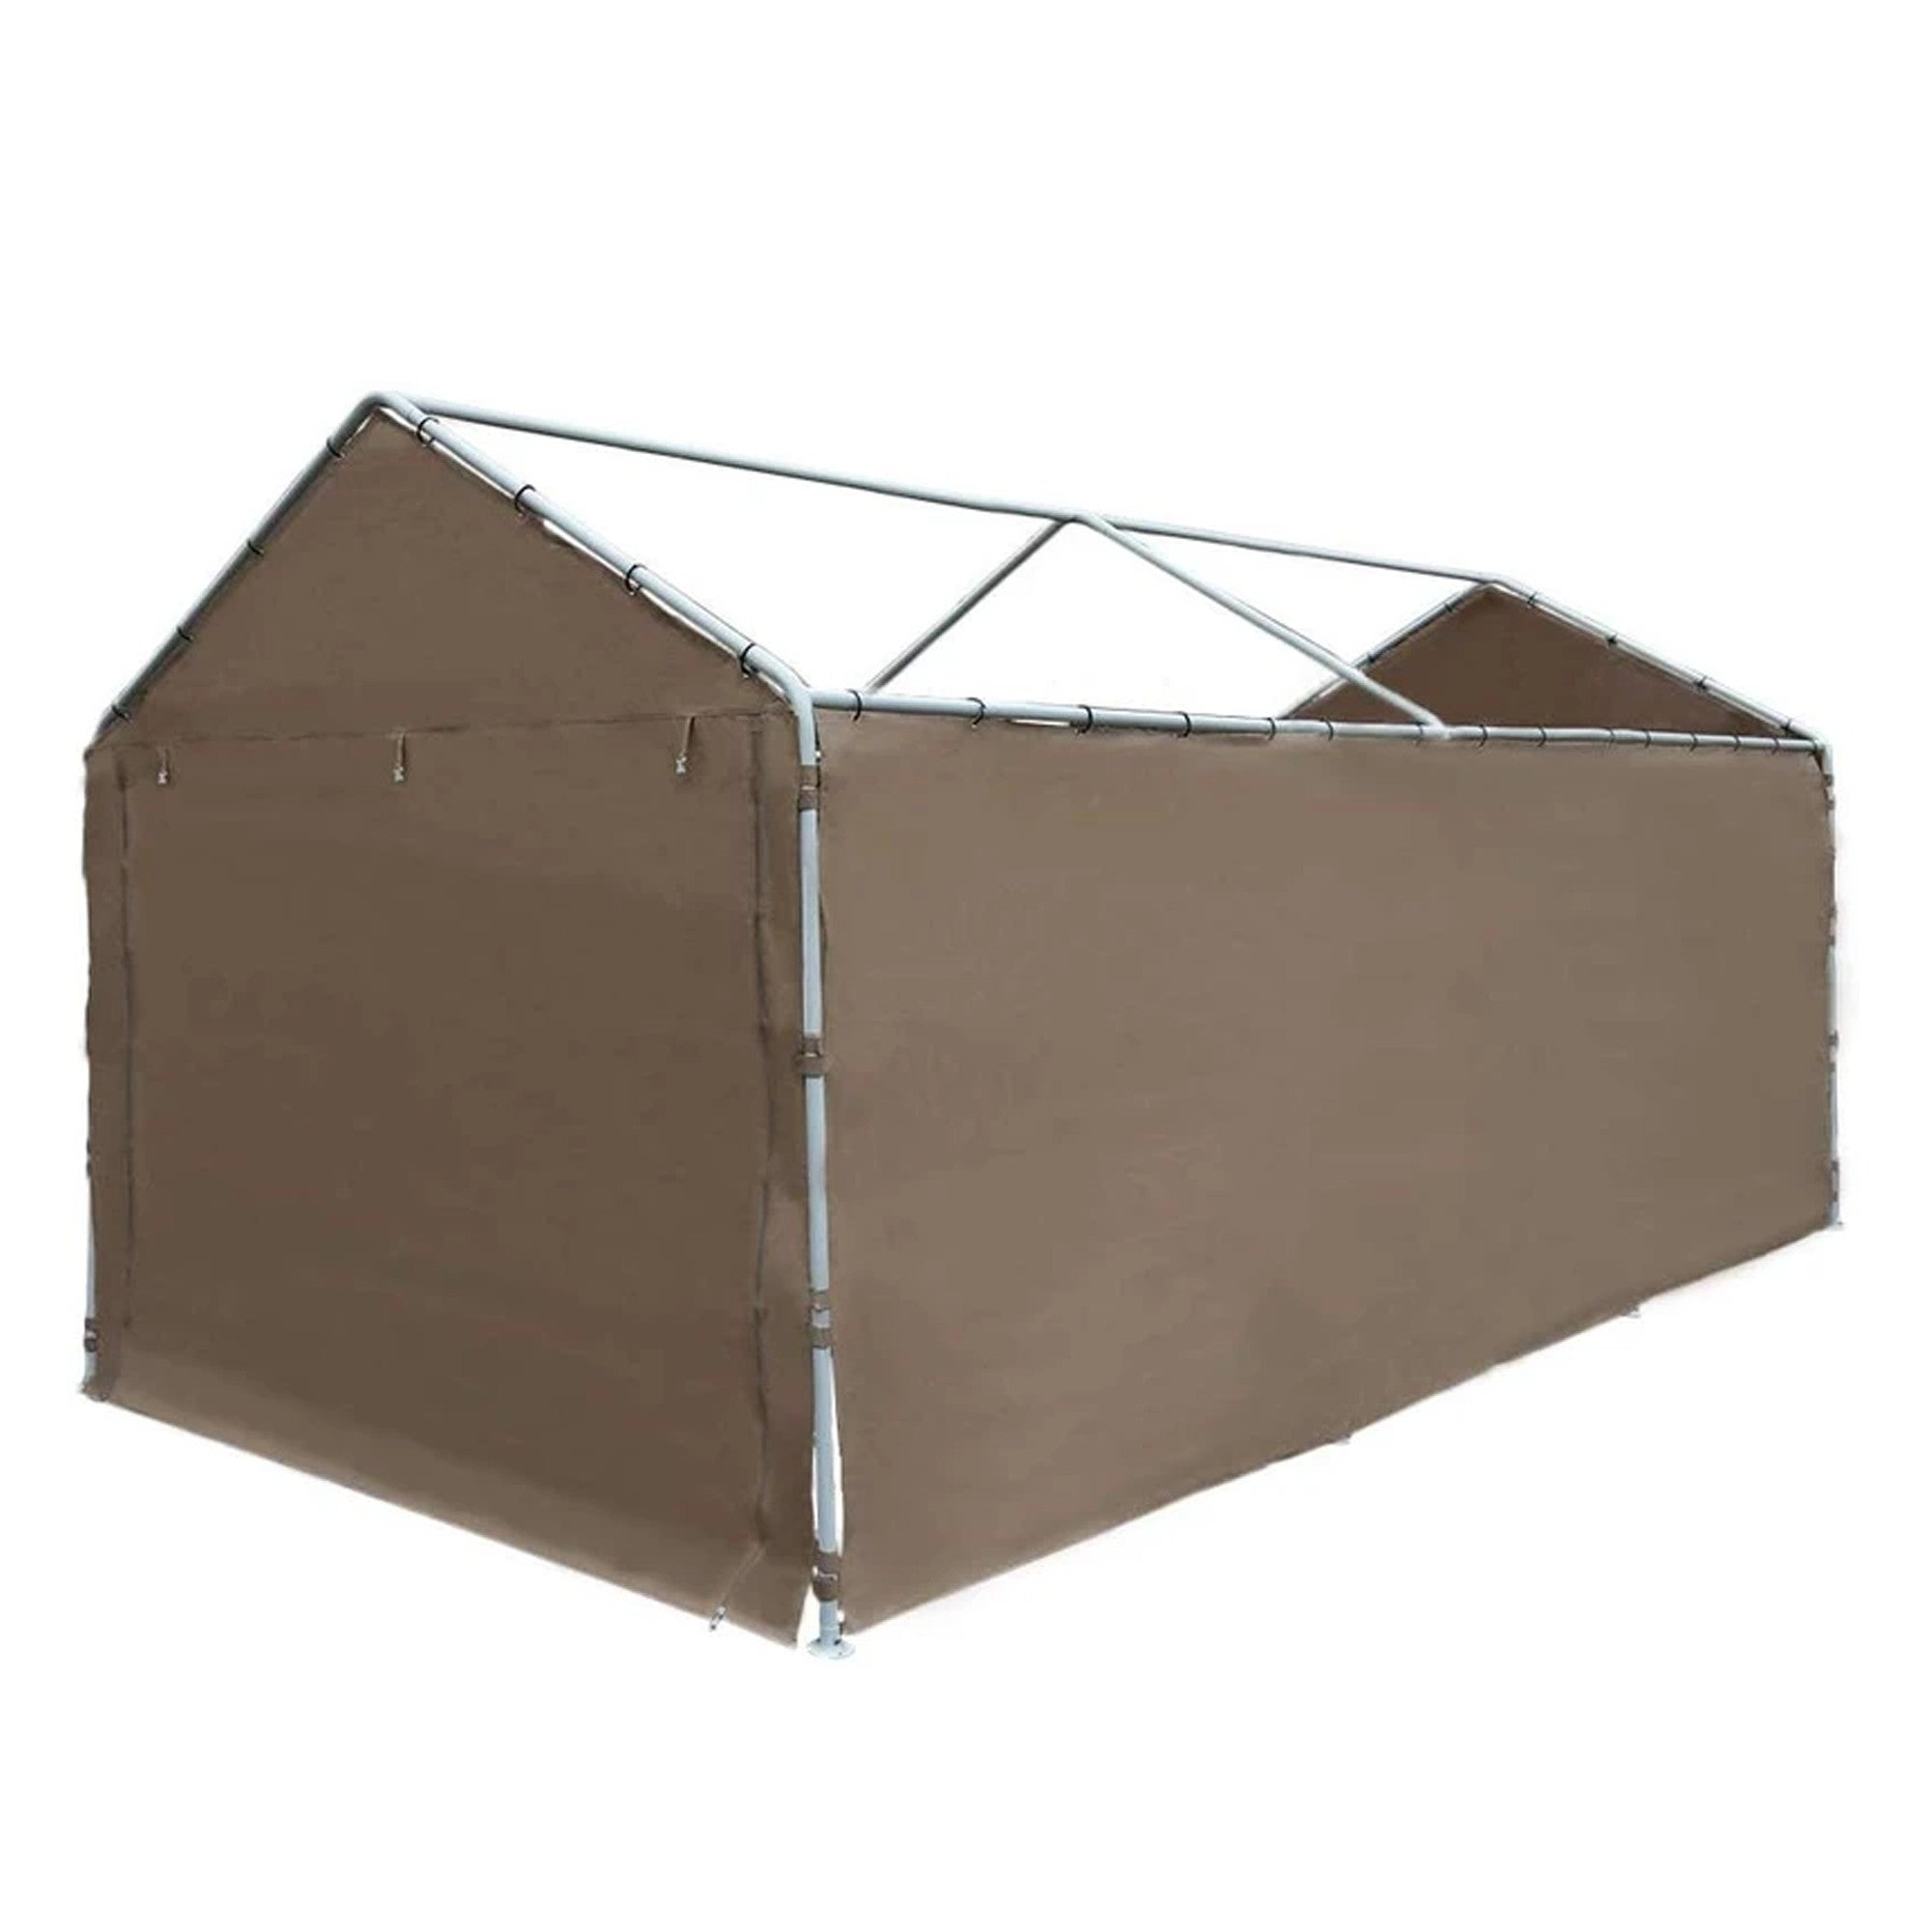 abbapatio.com - Replacement Cover for 10 x 20-Feet 6 Legs Carport Shelter with Rings, (Frame & Top Cover Not Included) 99.99 USD